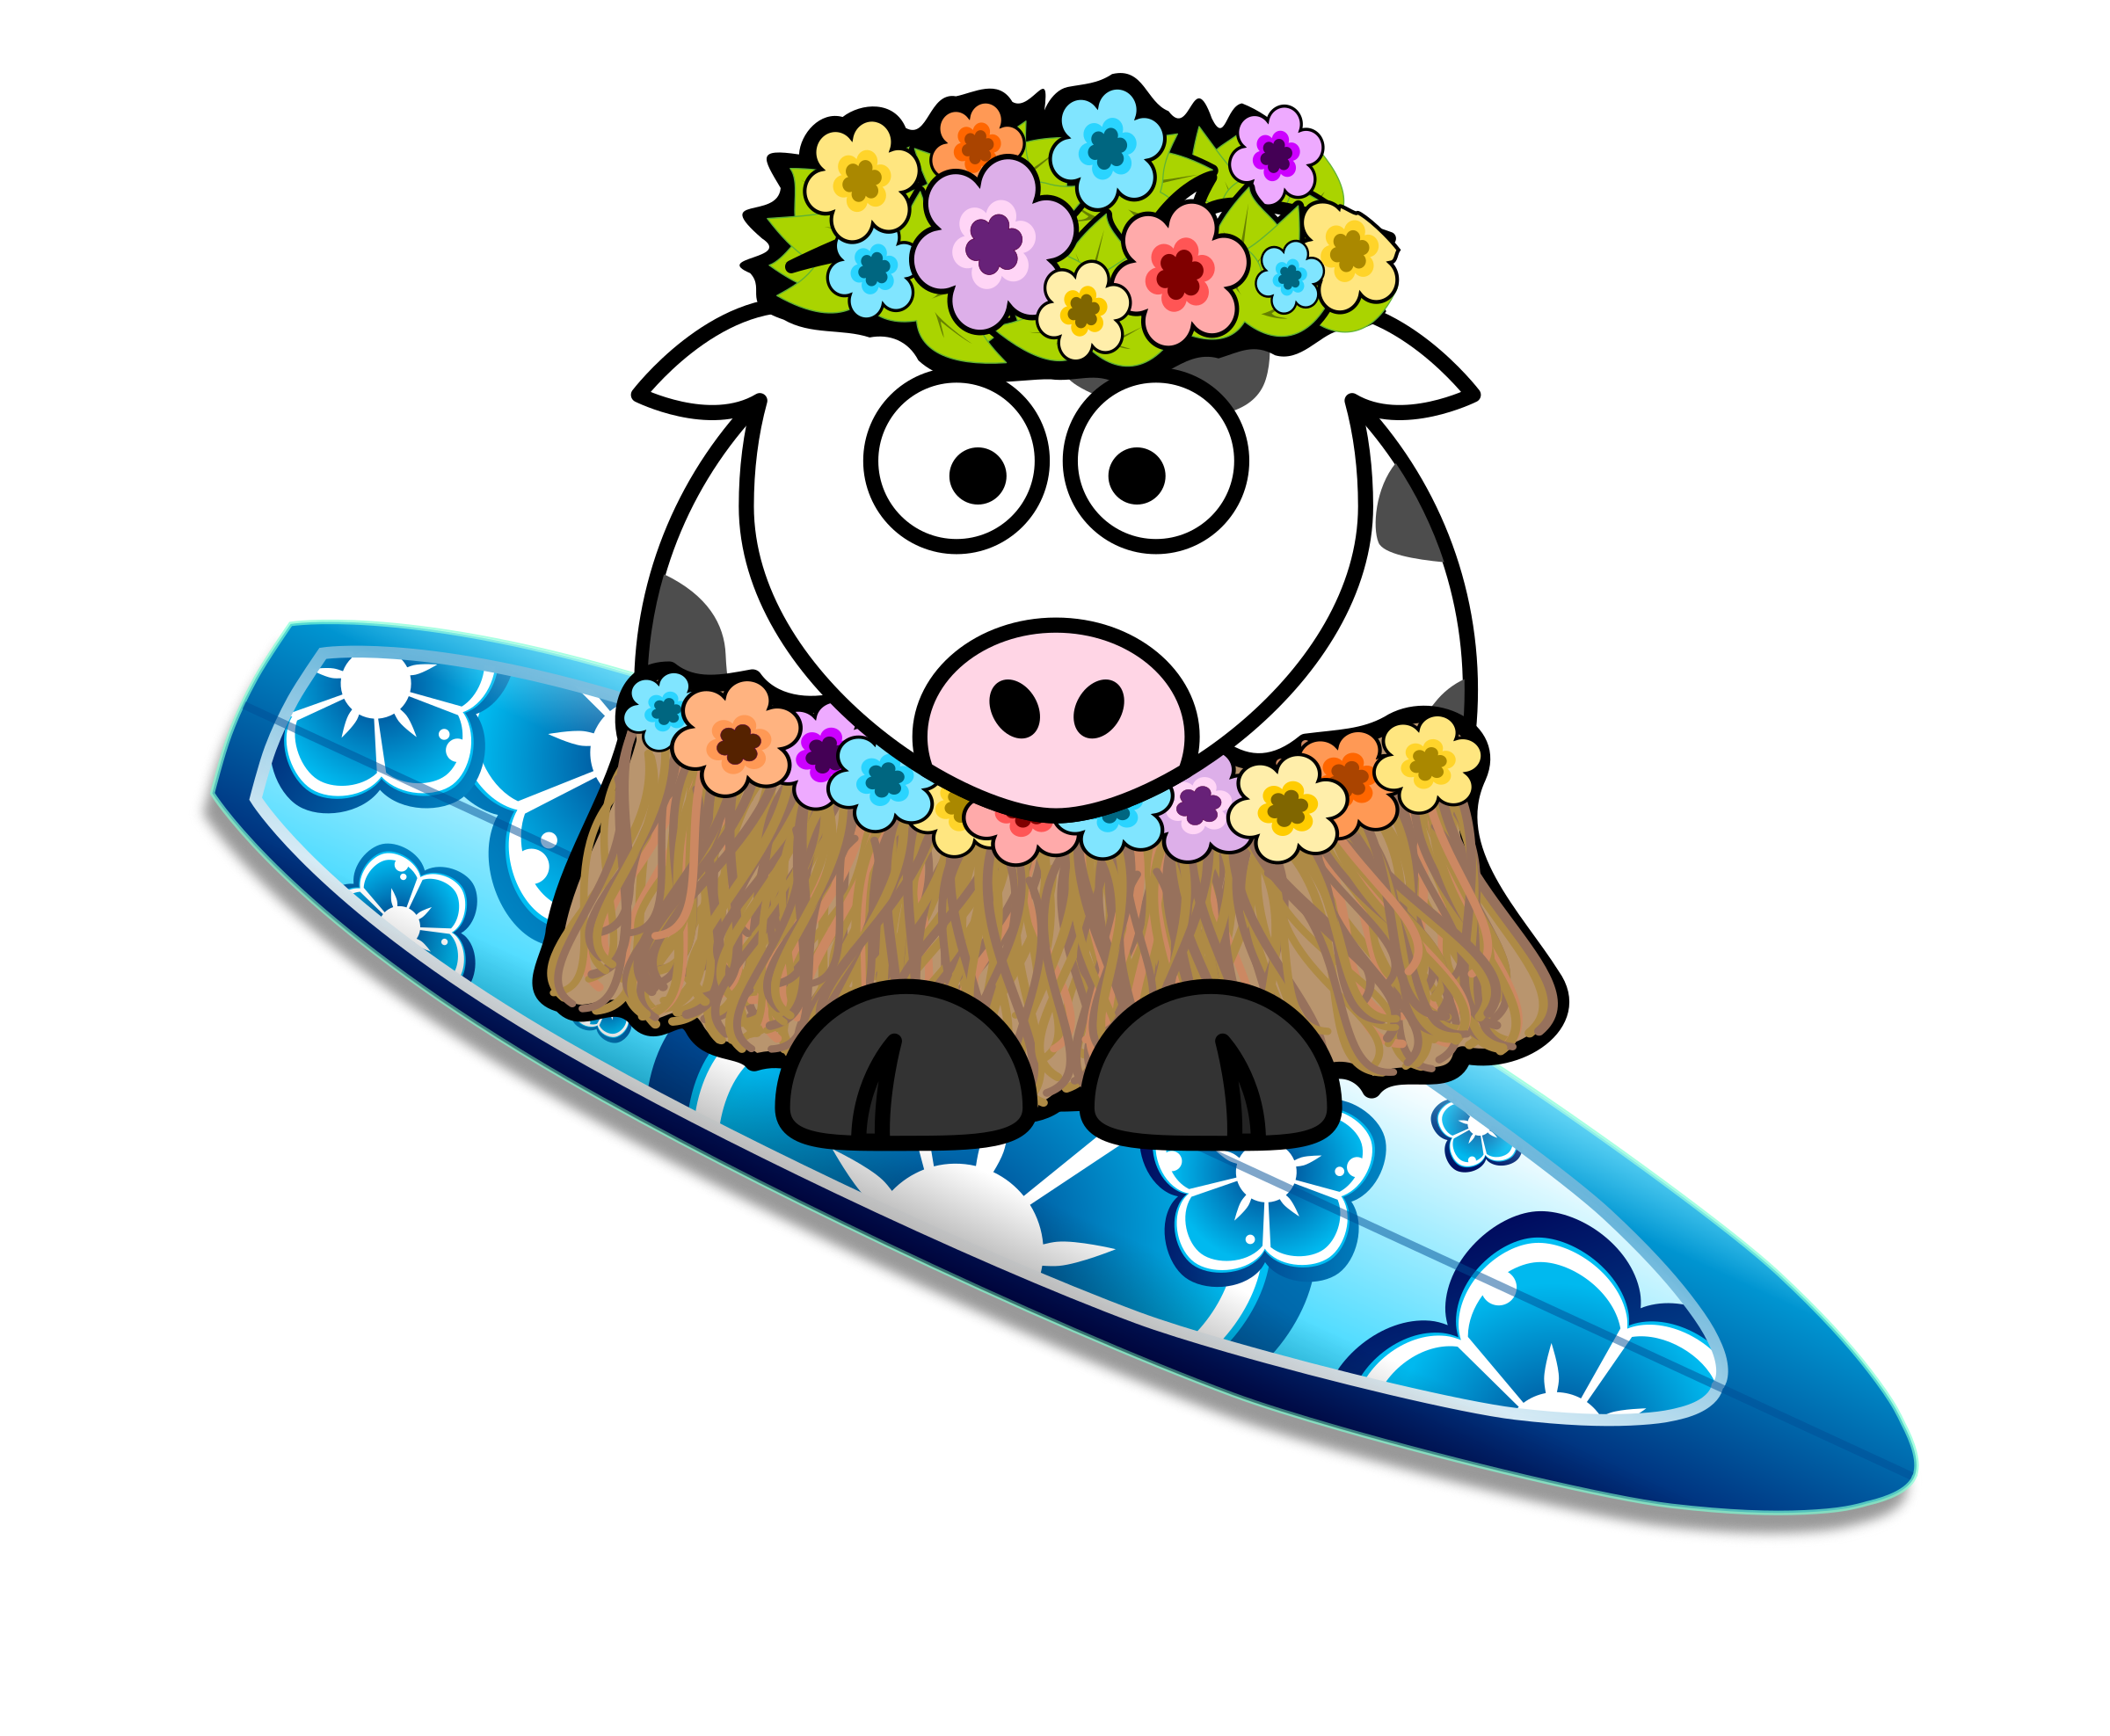 Clipart cow hat. Surfer girl big image